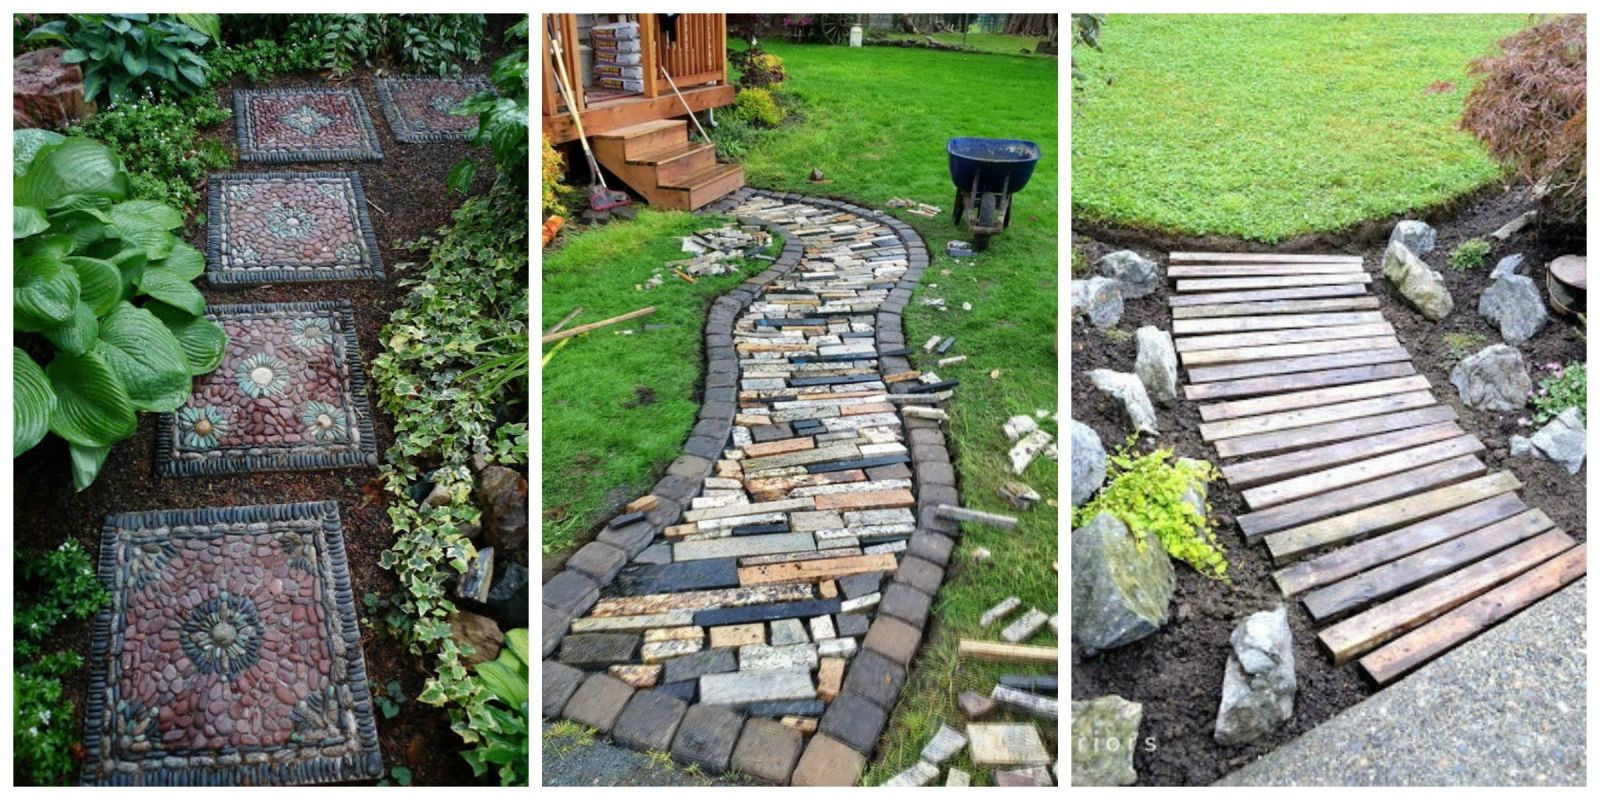 10 diy garden path ideas how to make a garden walkway - Garden ideas diy ...